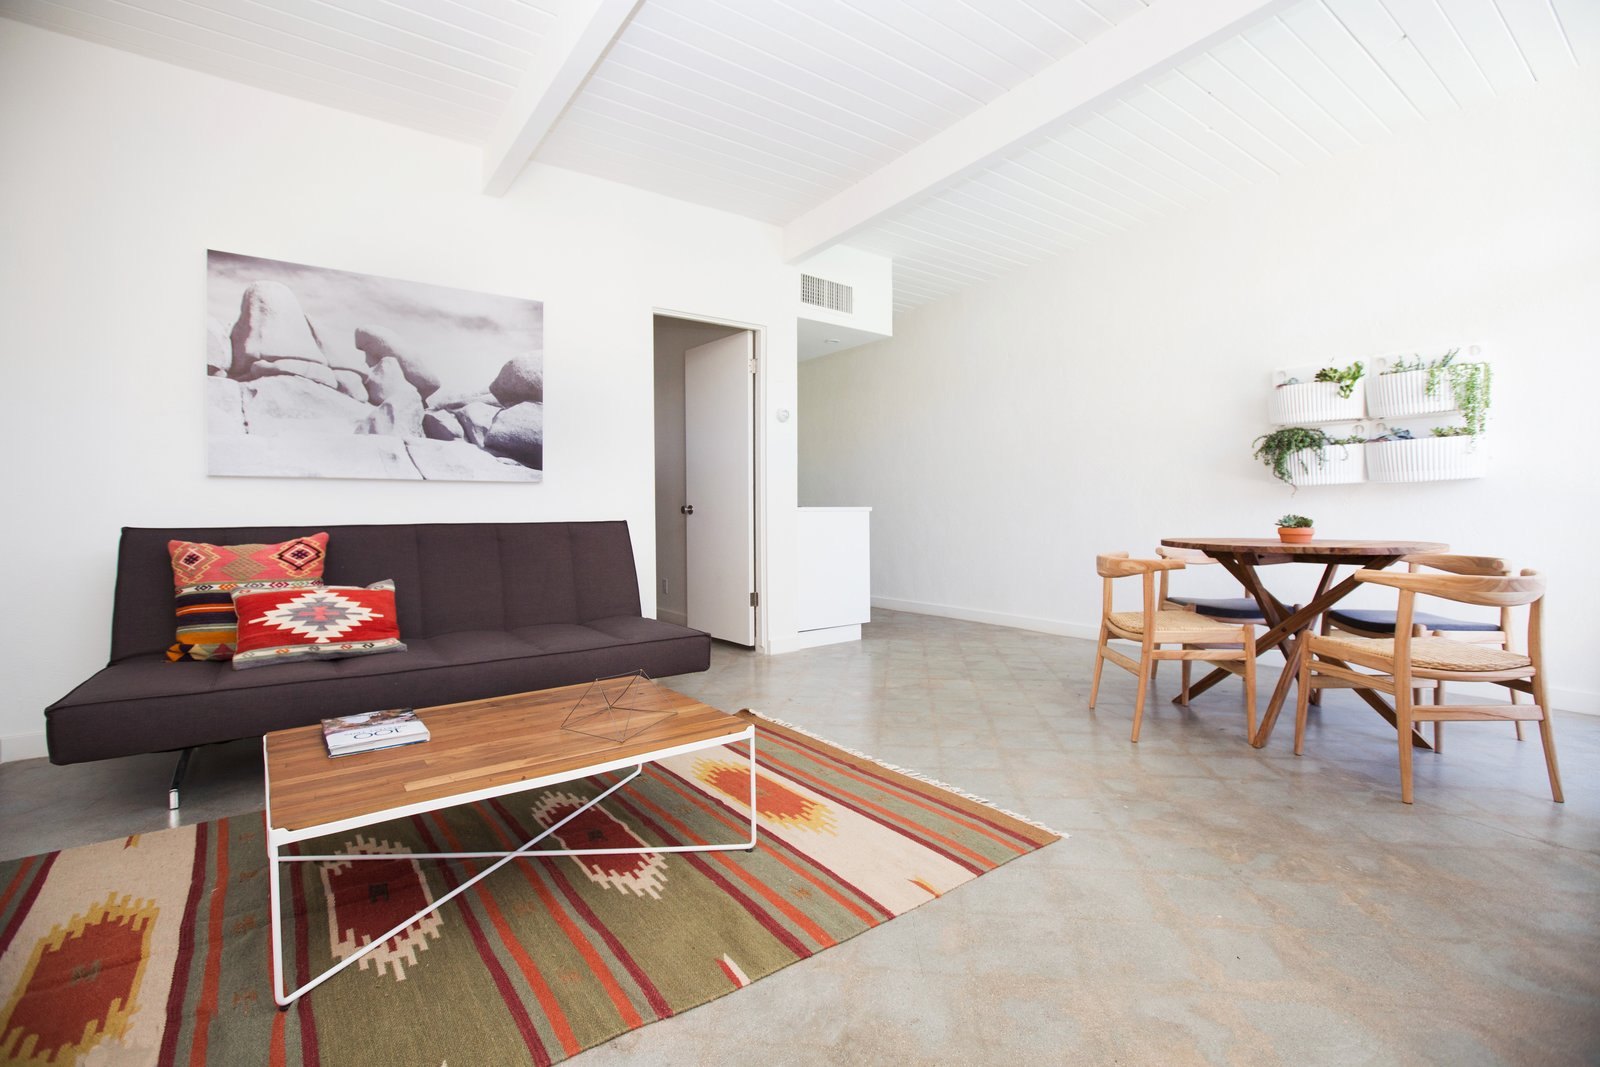 The Amado living area with concrete floors and walnut wood stained furnishings.